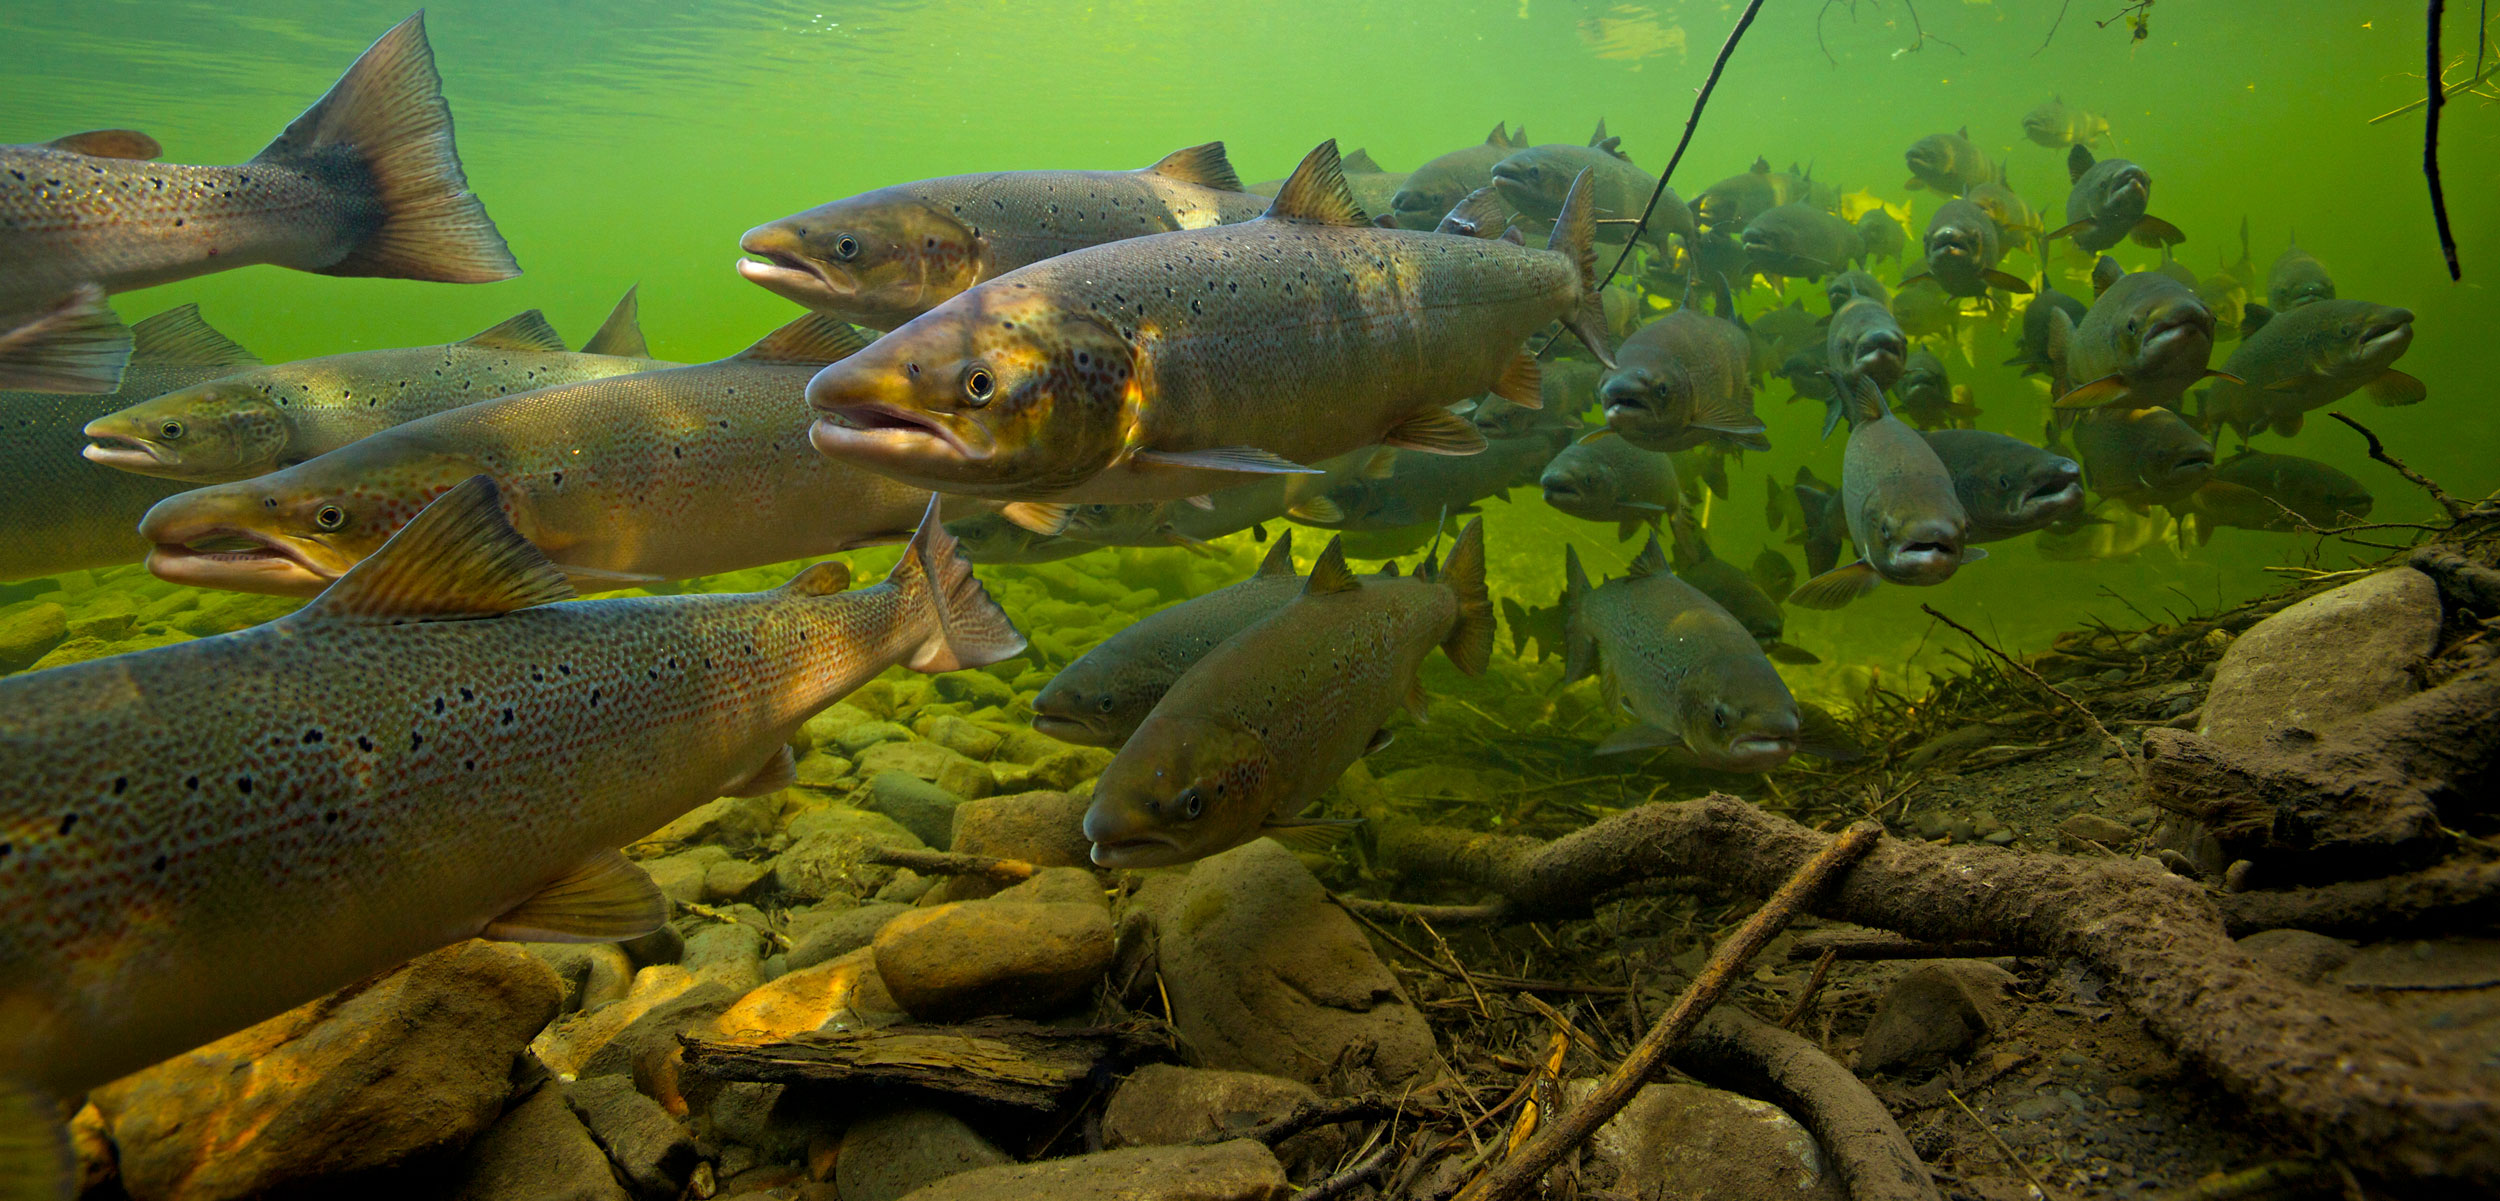 Atlantic salmon (Salmo salar) migrating upstream to spawn